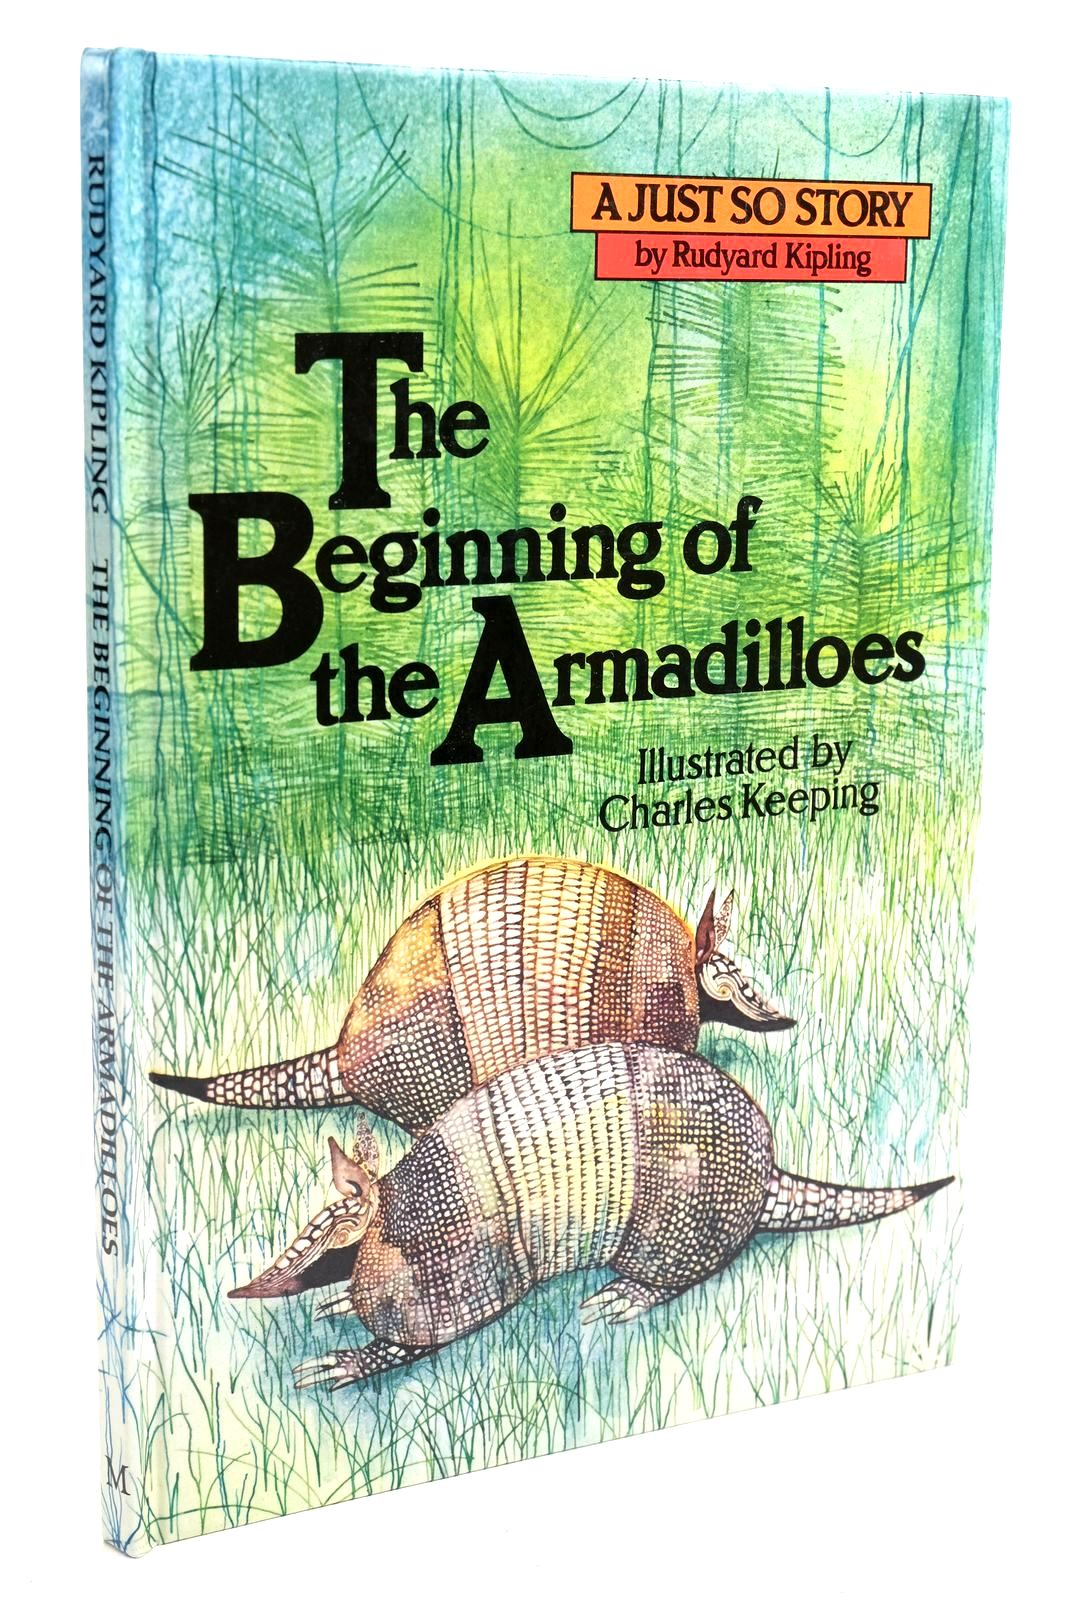 Photo of THE BEGINNING OF THE ARMADILLOES written by Kipling, Rudyard illustrated by Keeping, Charles published by Macmillan Children's Books (STOCK CODE: 1320960)  for sale by Stella & Rose's Books